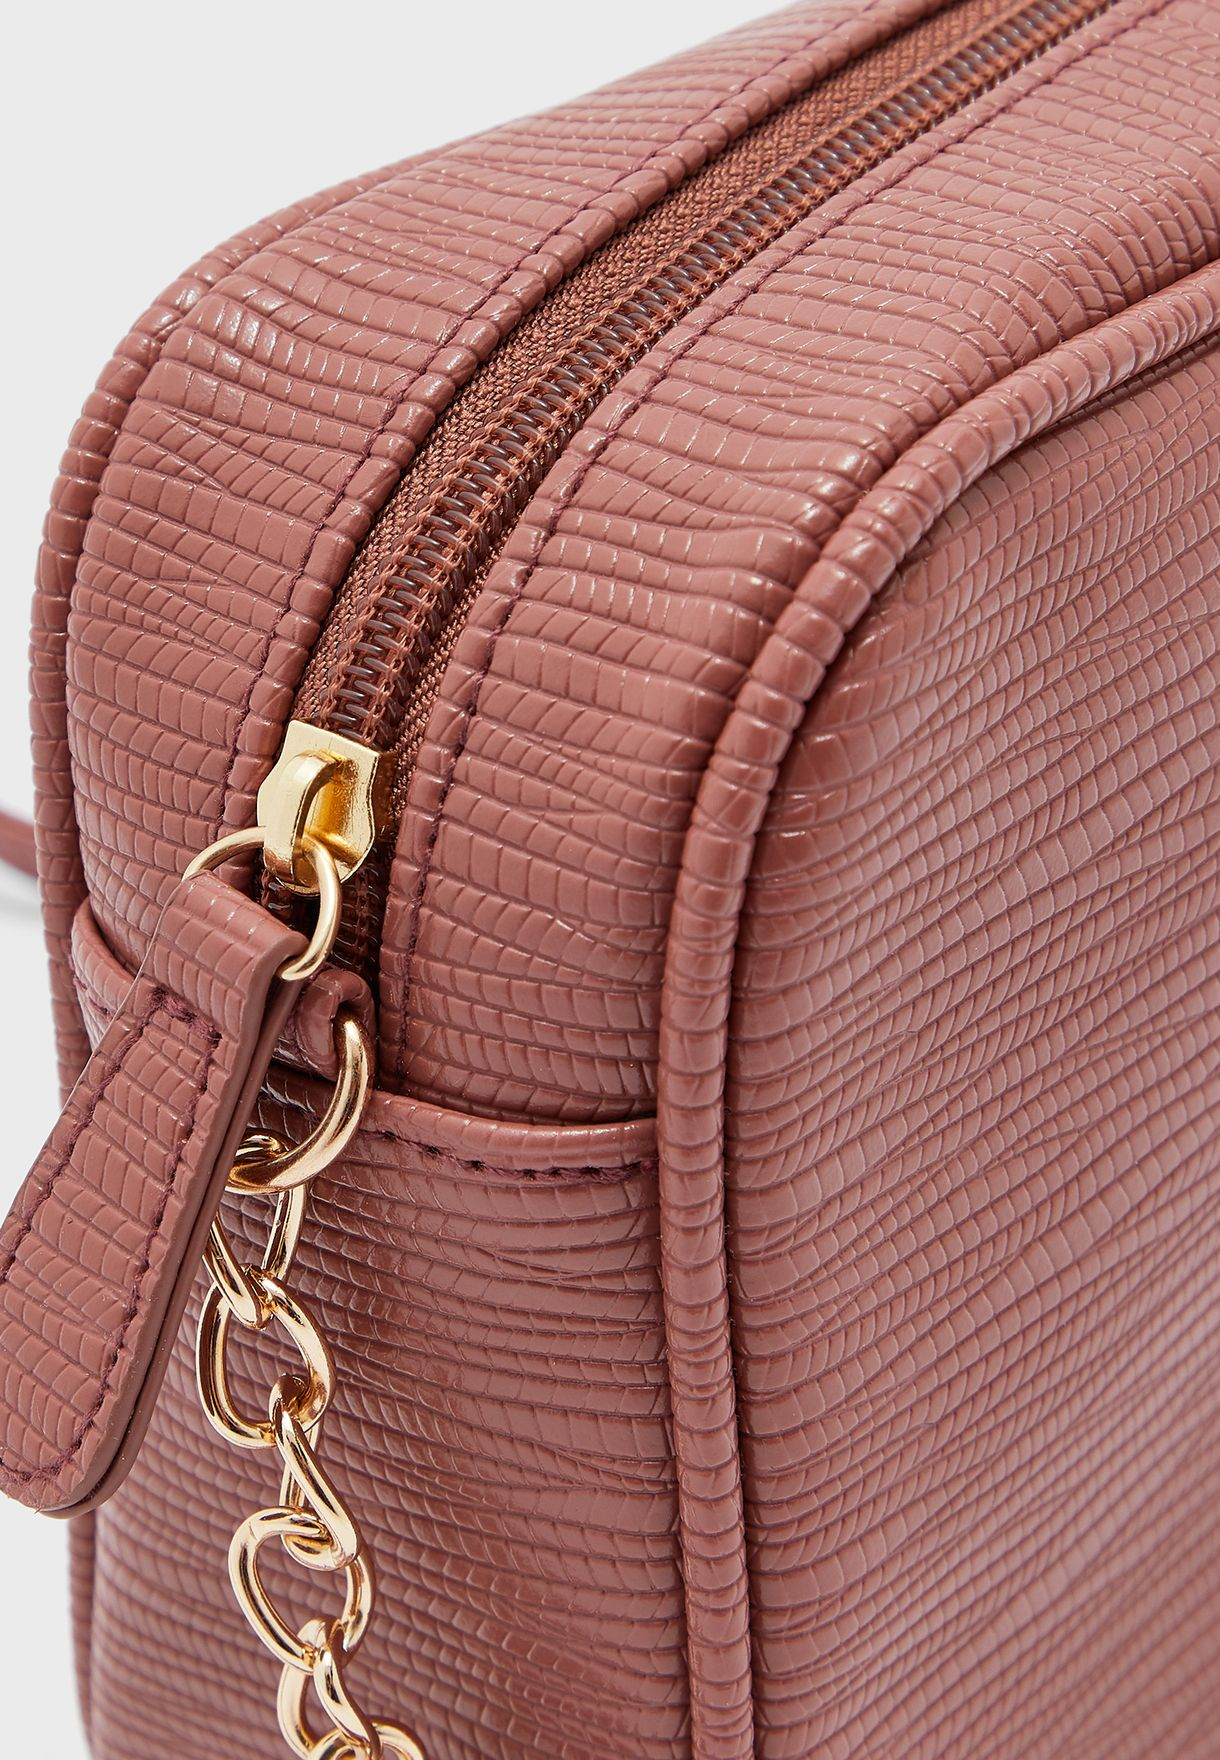 Lizard Texture Crossbody Camera Bag